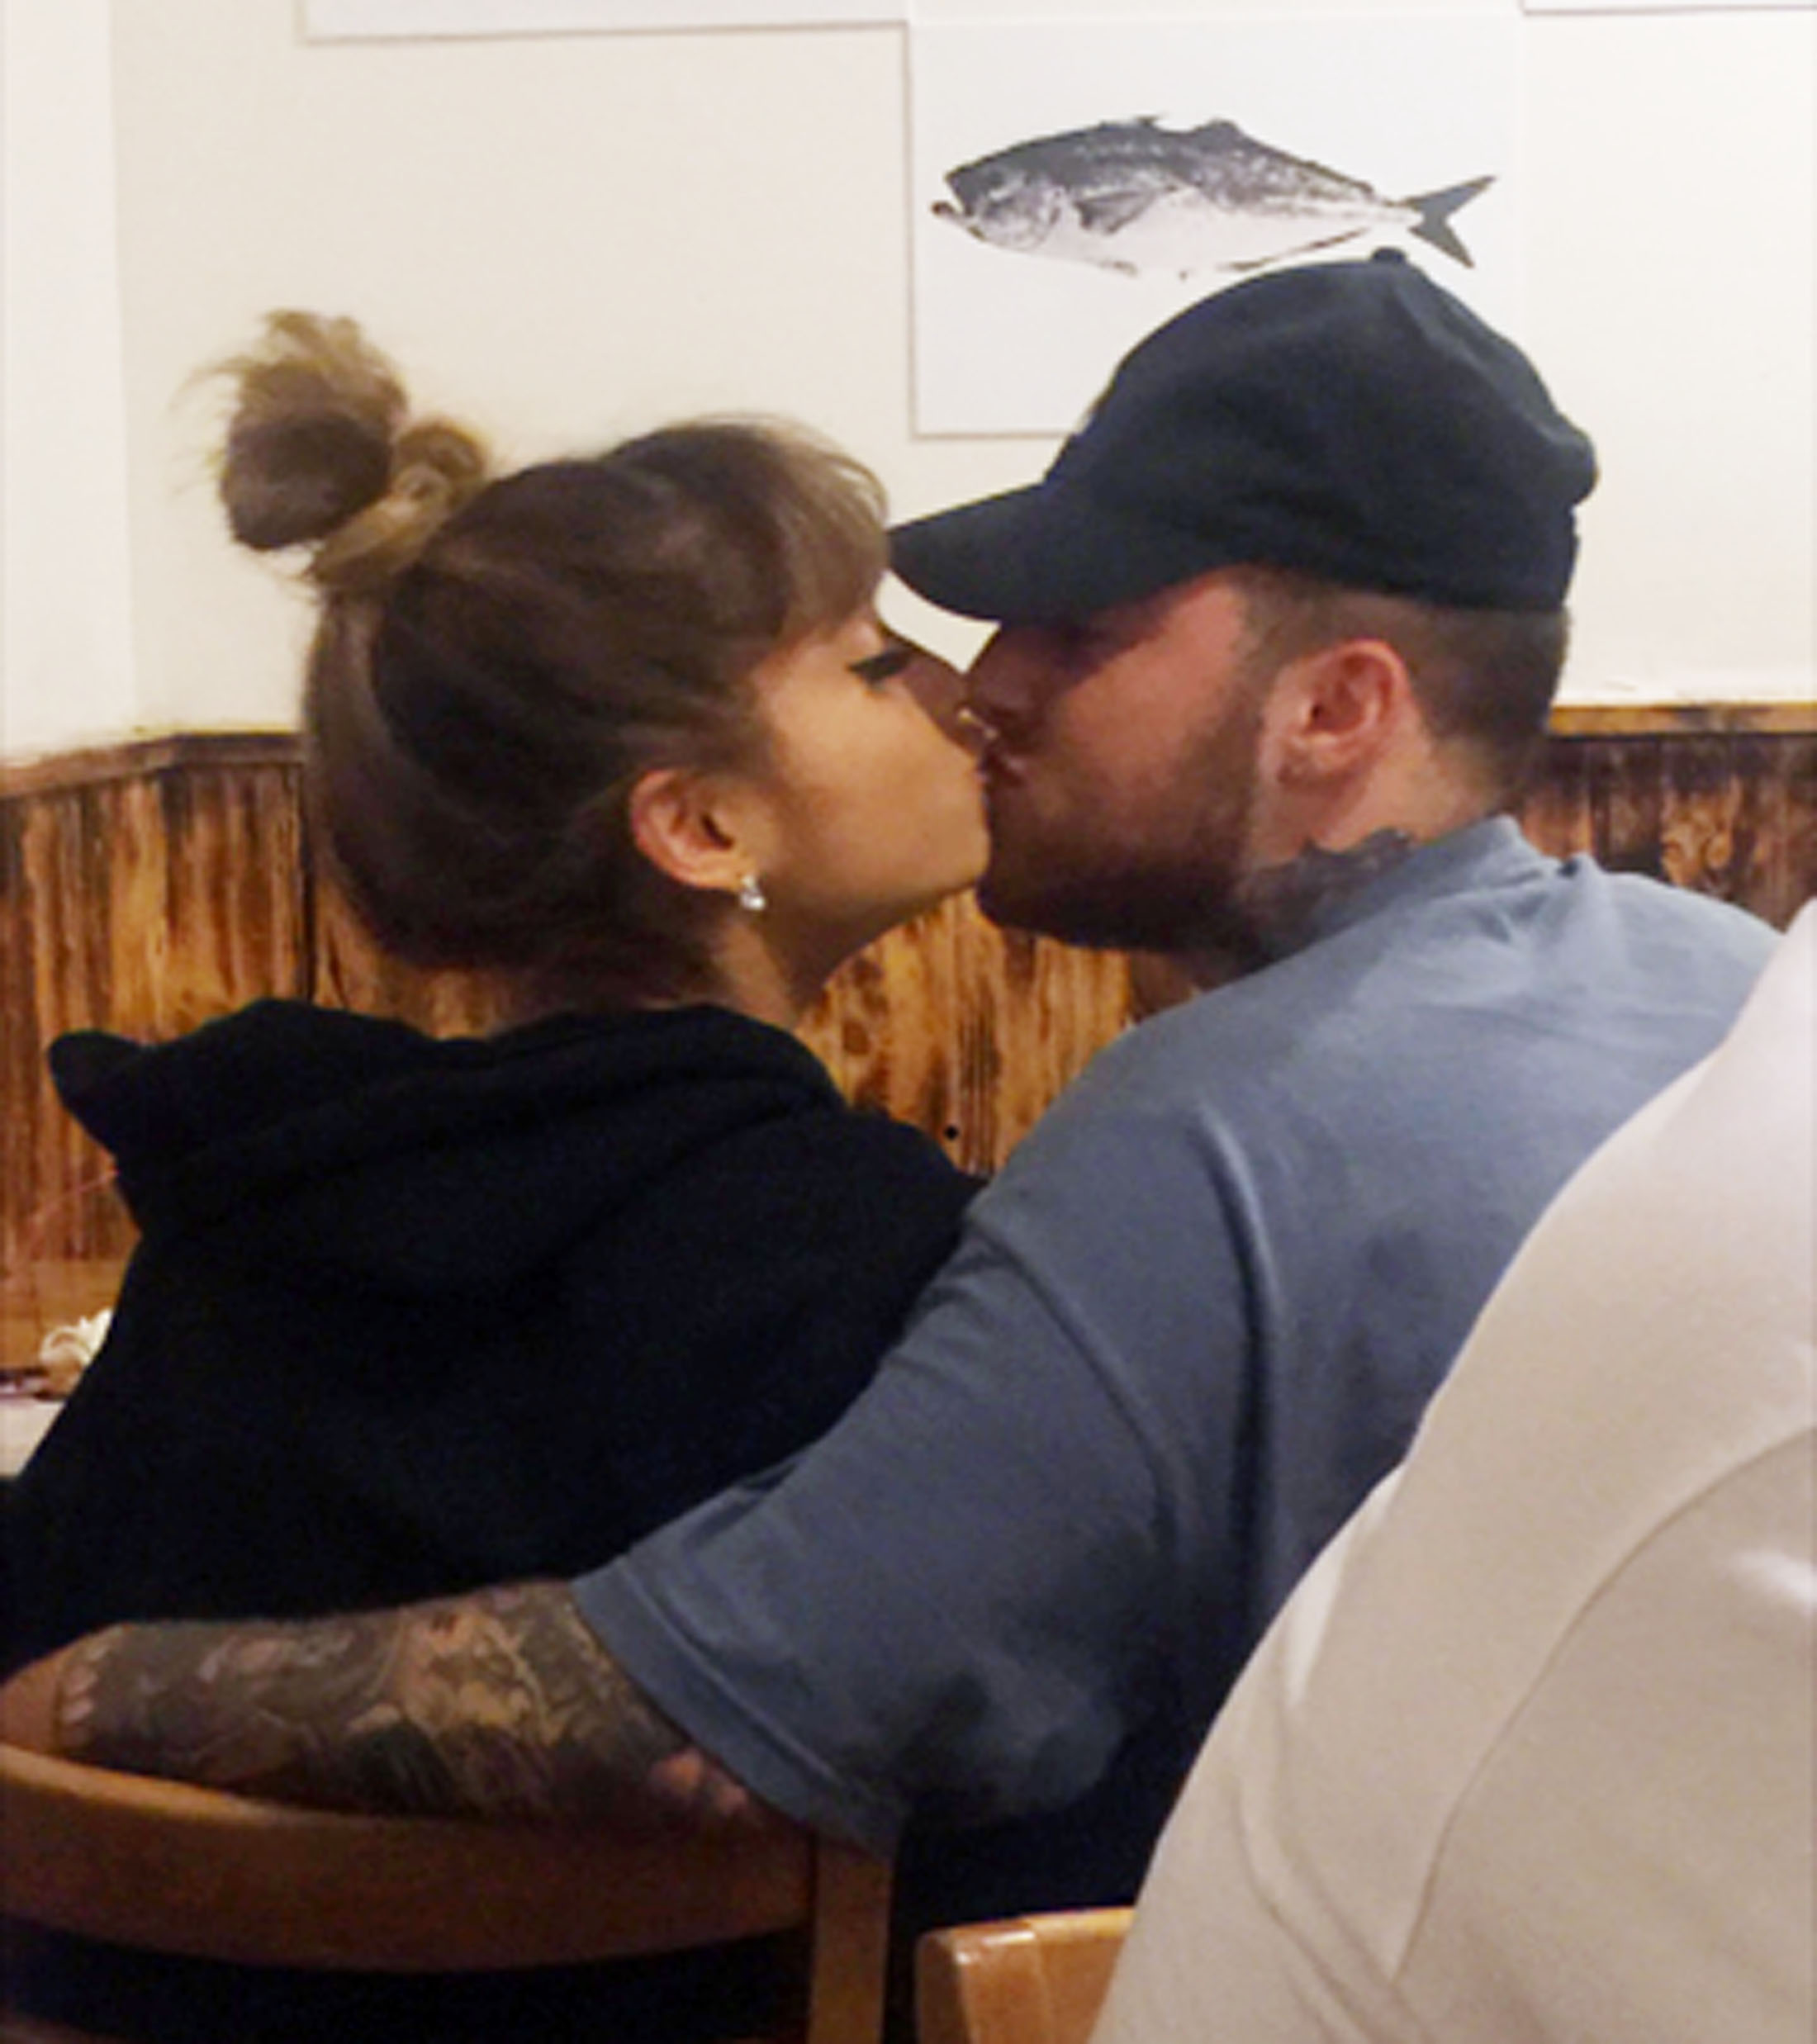 Ariana Grande kisses Mac Miller